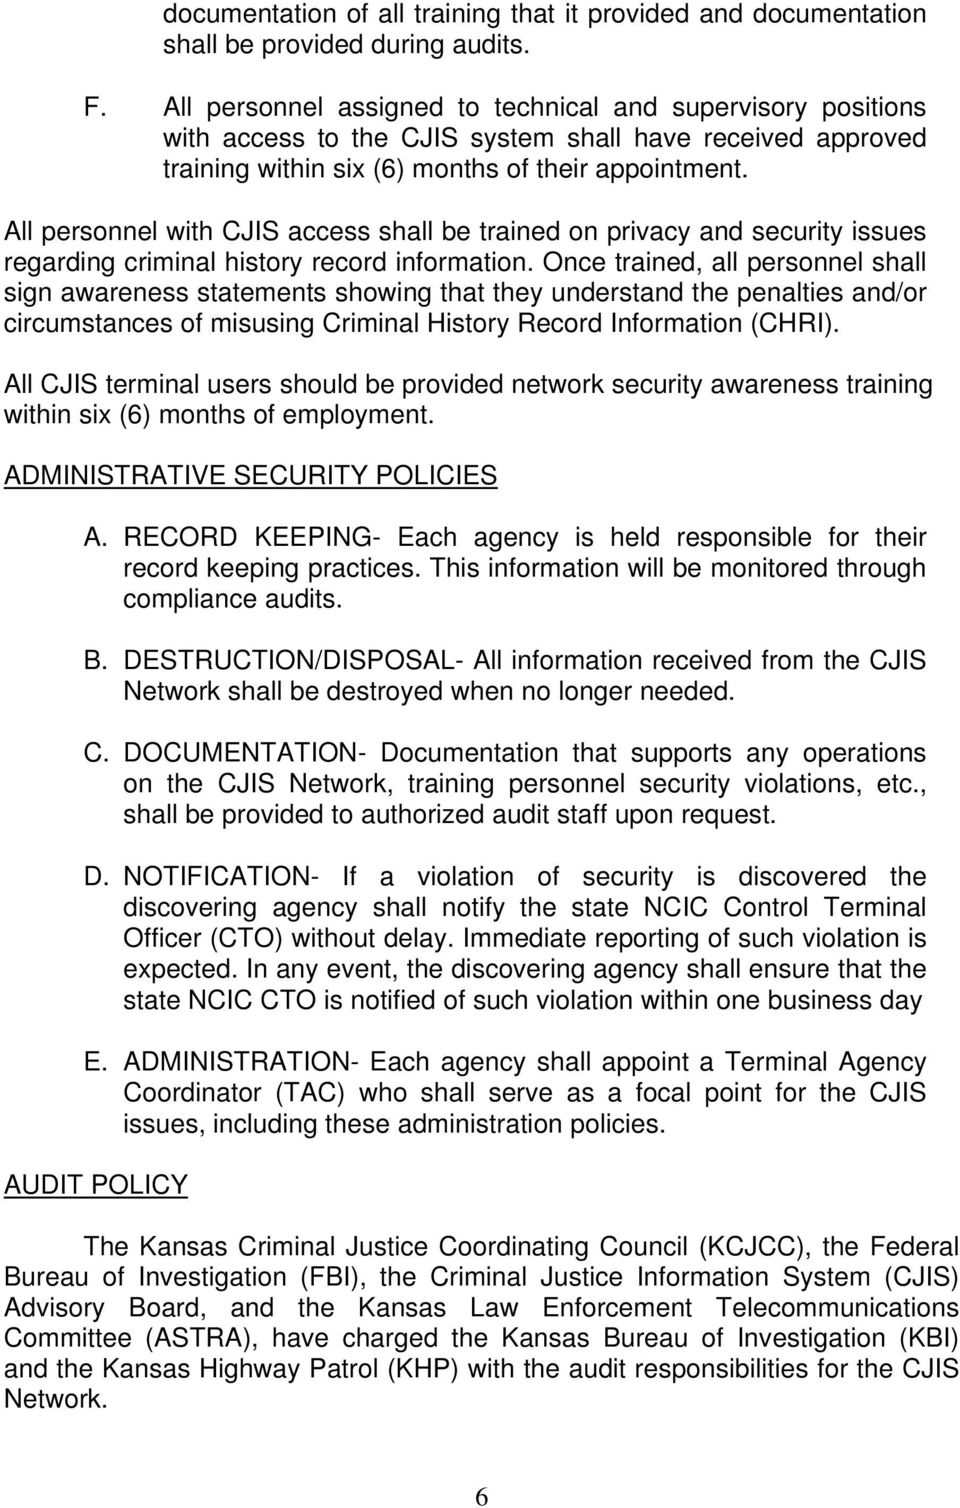 All personnel with CJIS access shall be trained on privacy and security issues regarding criminal history record information.